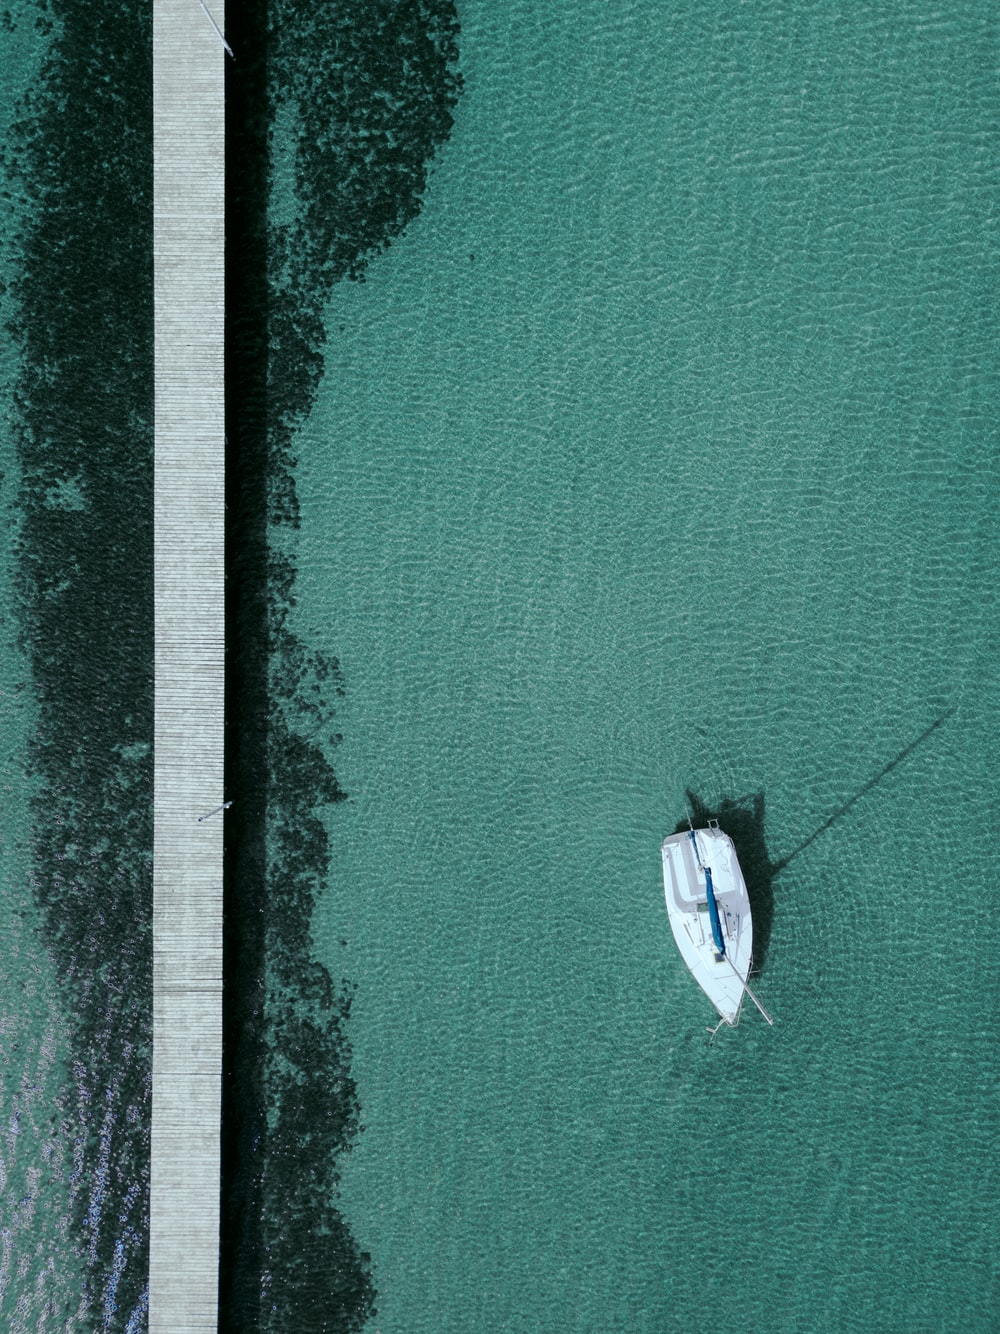 white boat in body of water during daytime